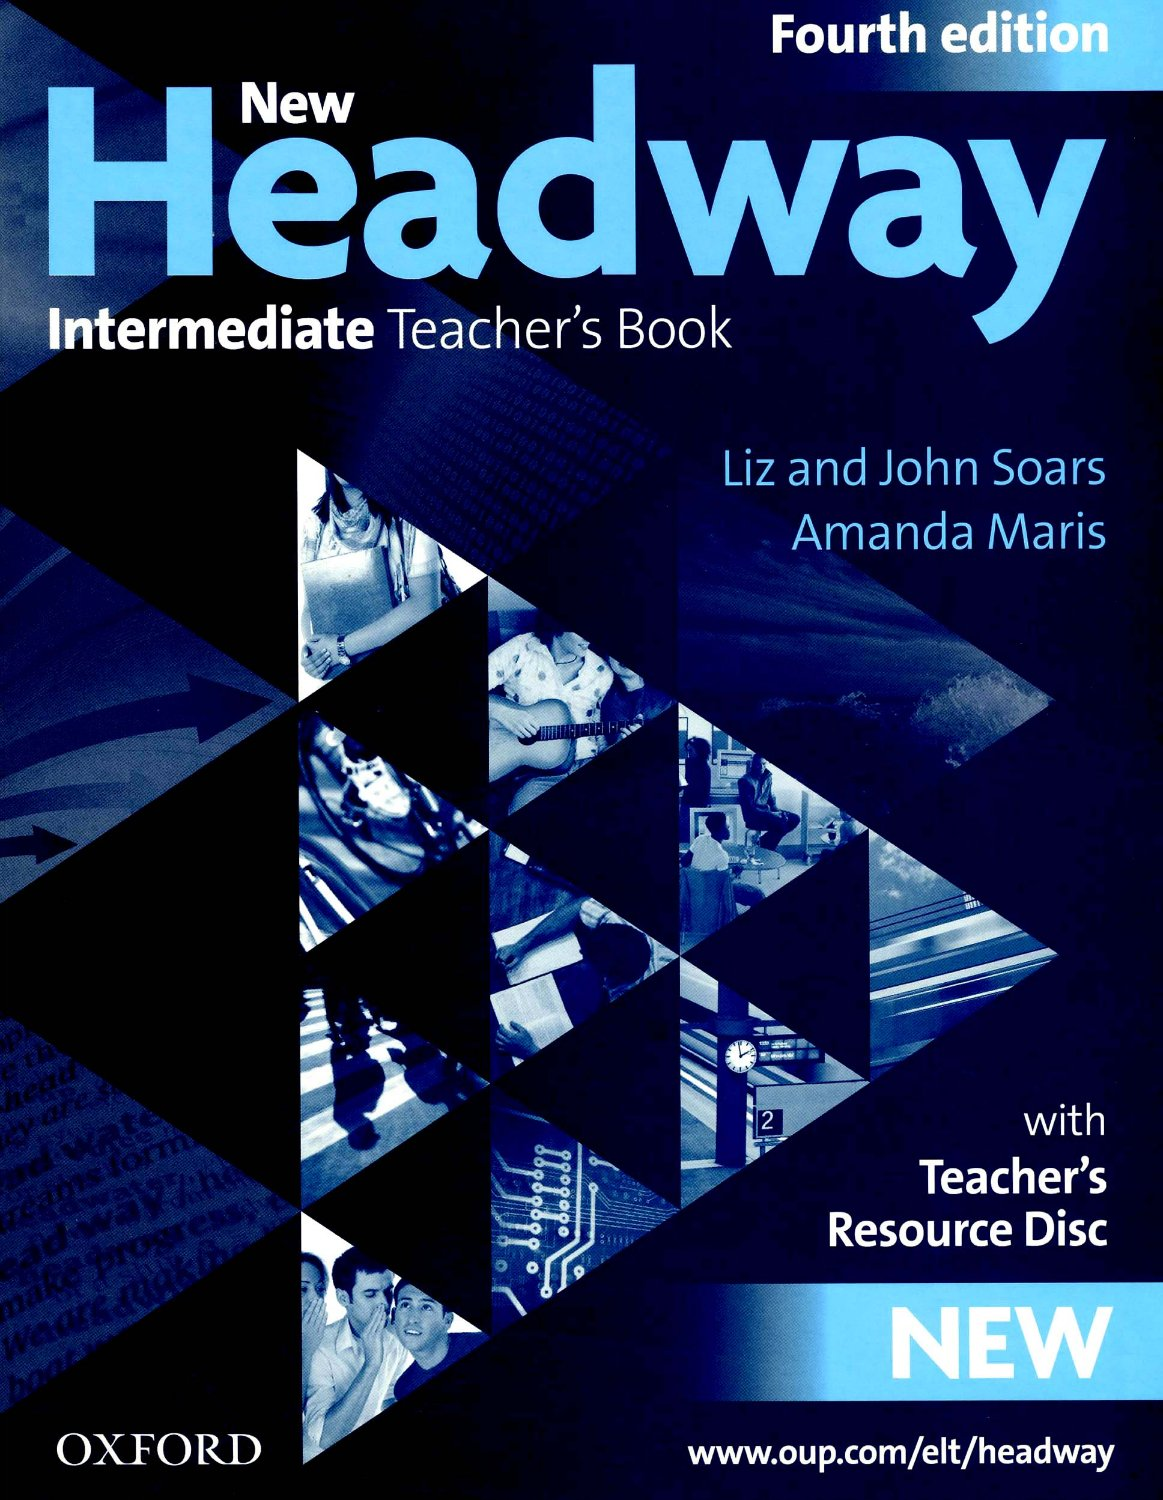 NEW HEADWAY INTERMEDIATE 4th ED Teacher's Book